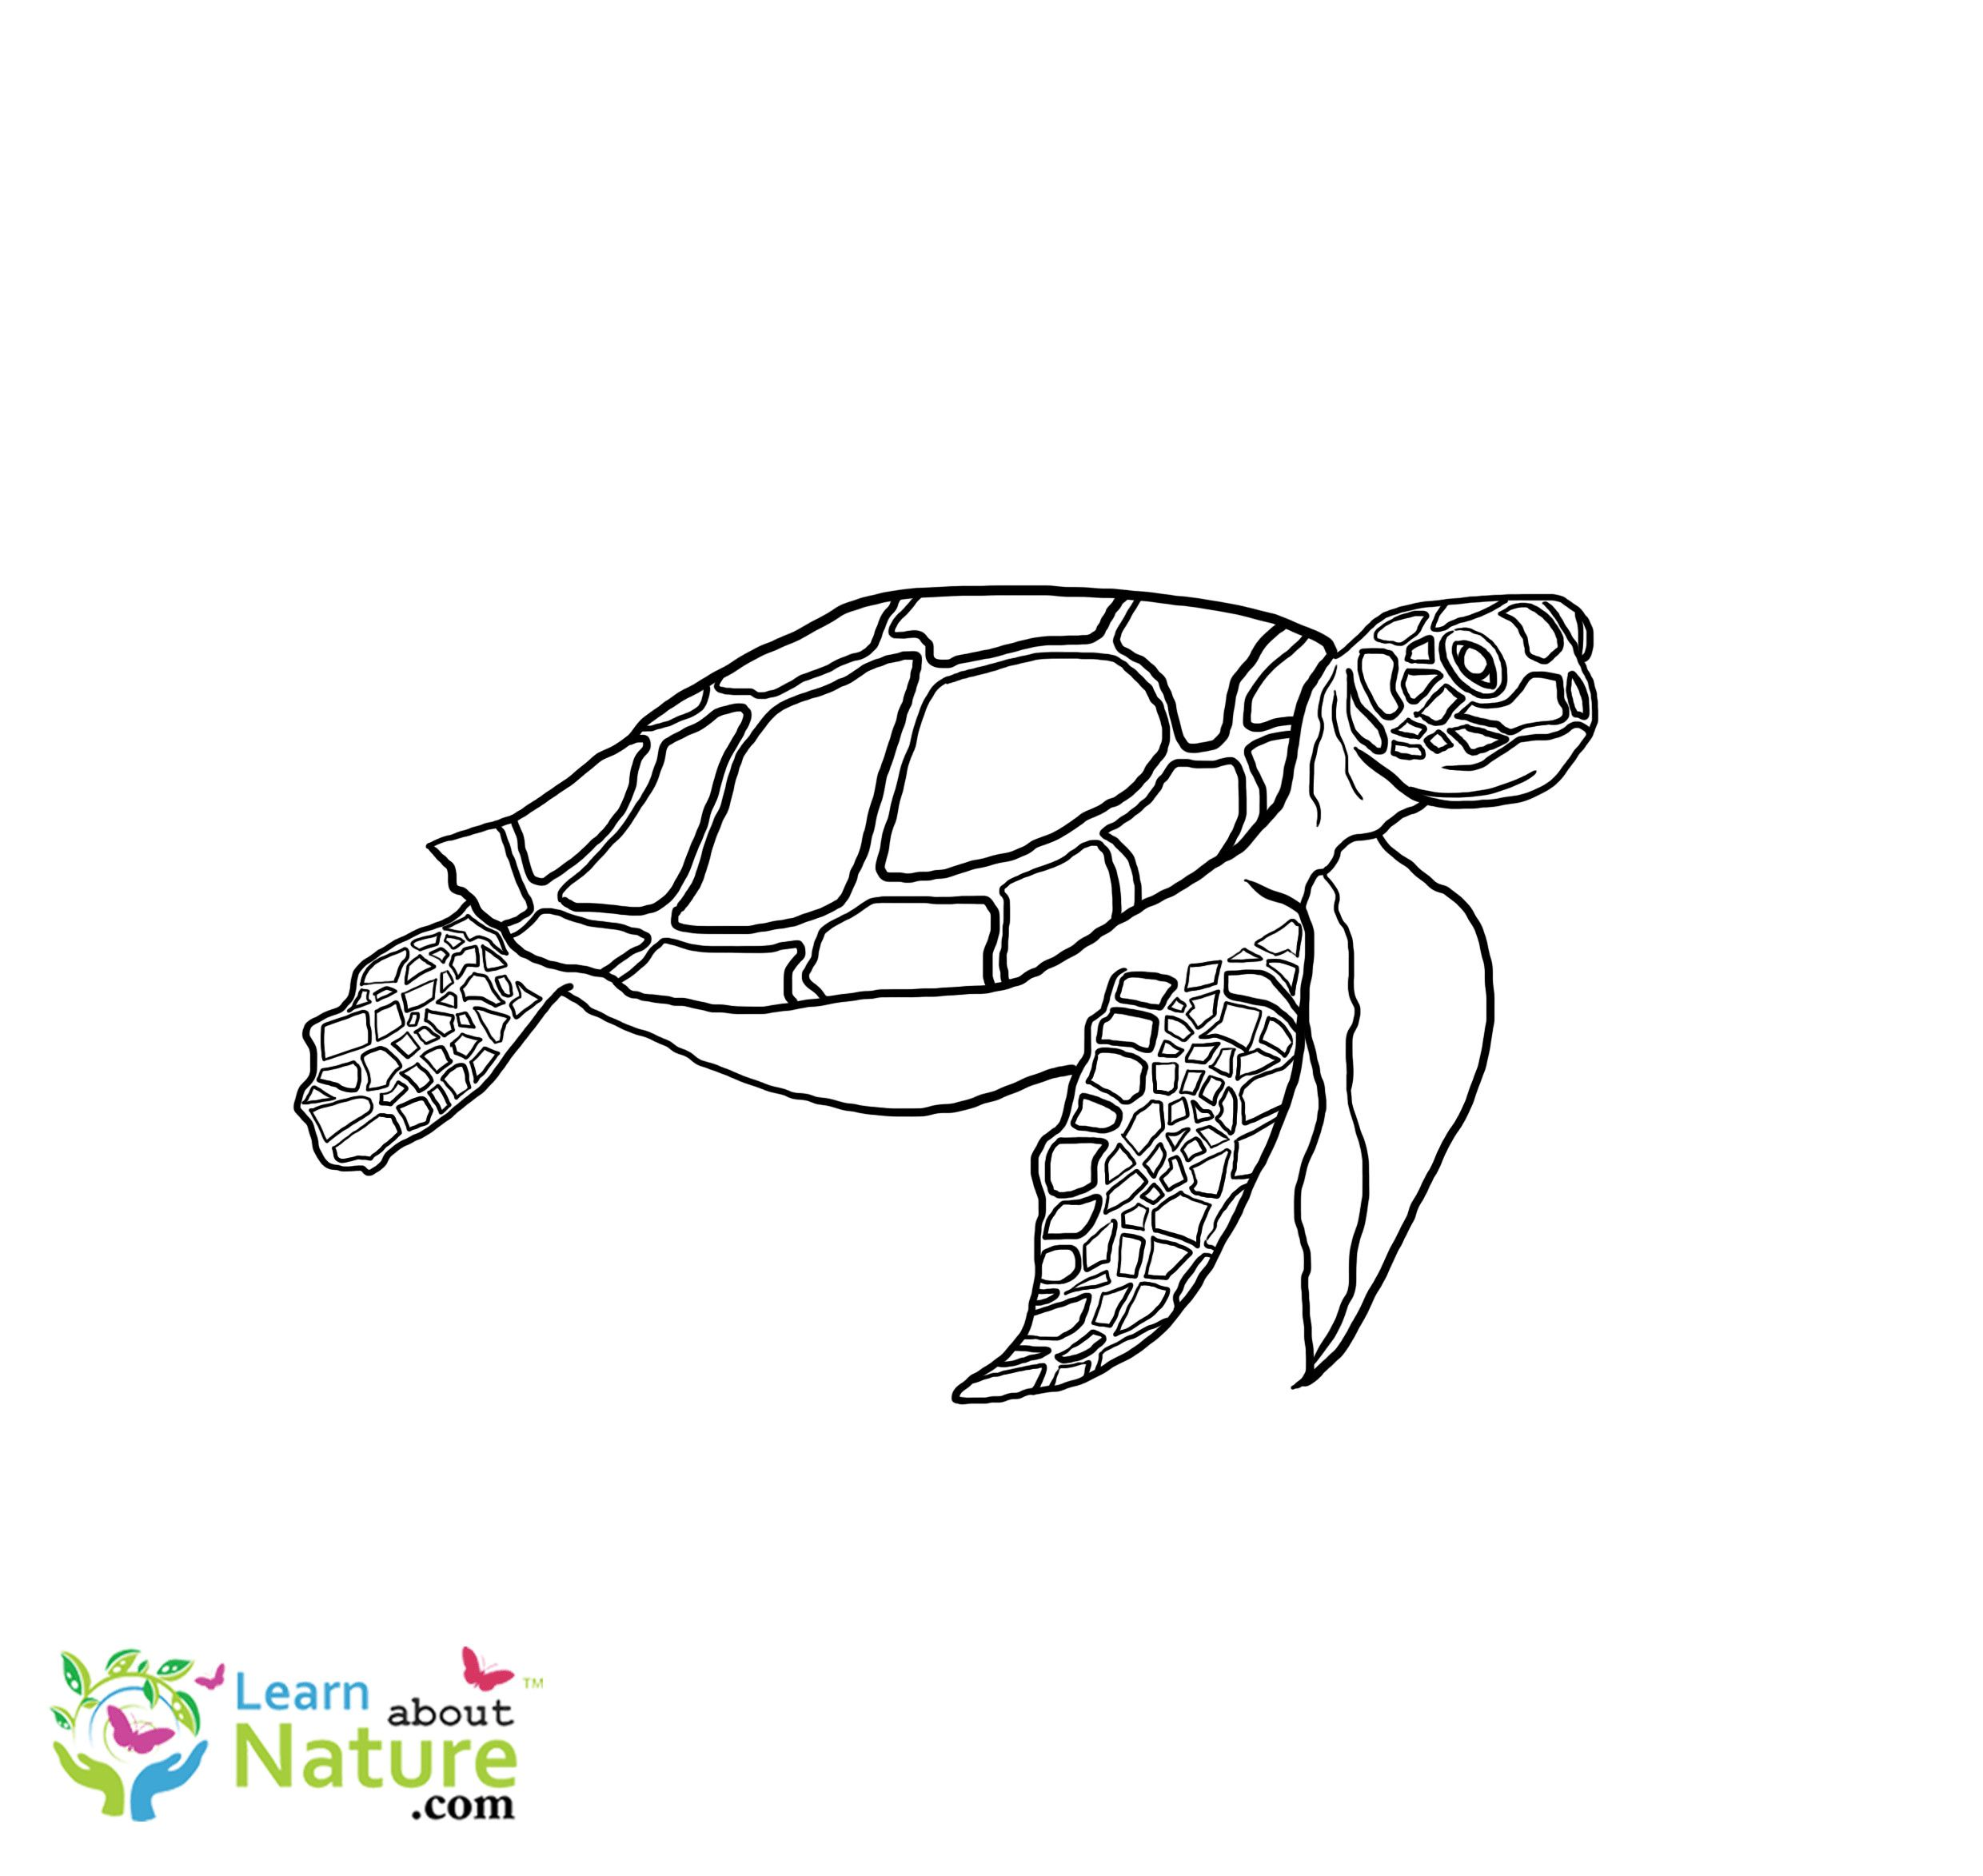 Sea Turtle Coloring Page Inspirational Coloring Ideas Sea Turtle Coloring Page Learn About Na Turtle Coloring Pages Coloring Pages Coloring Pages Inspirational